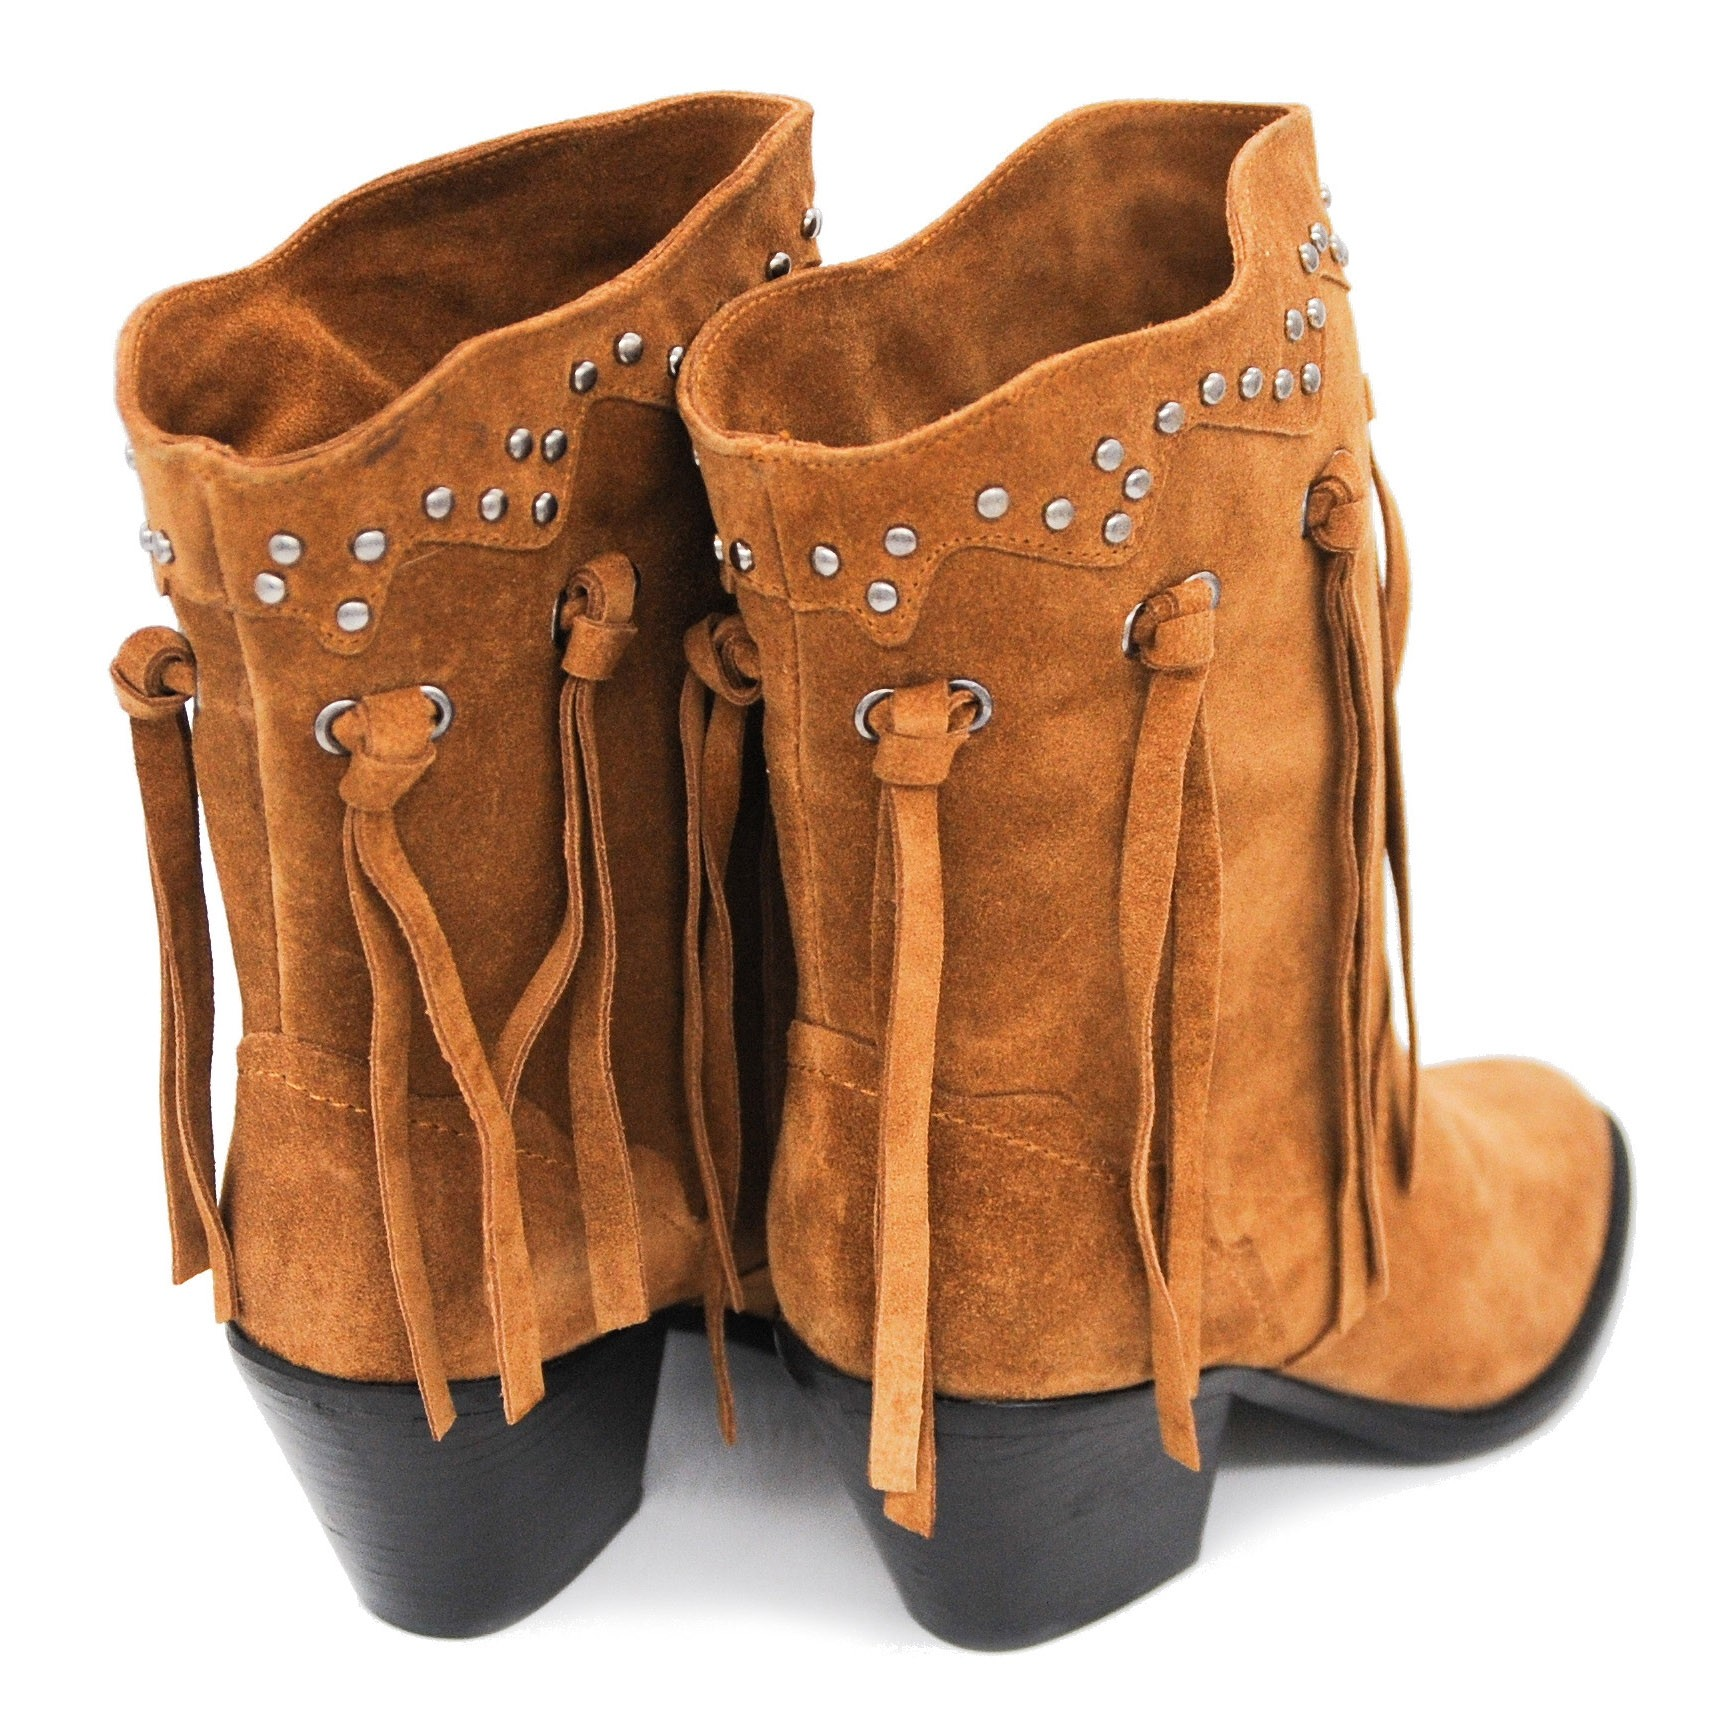 Ankle Length Ladies' Fashion Boots in Beautiful Soft Suede